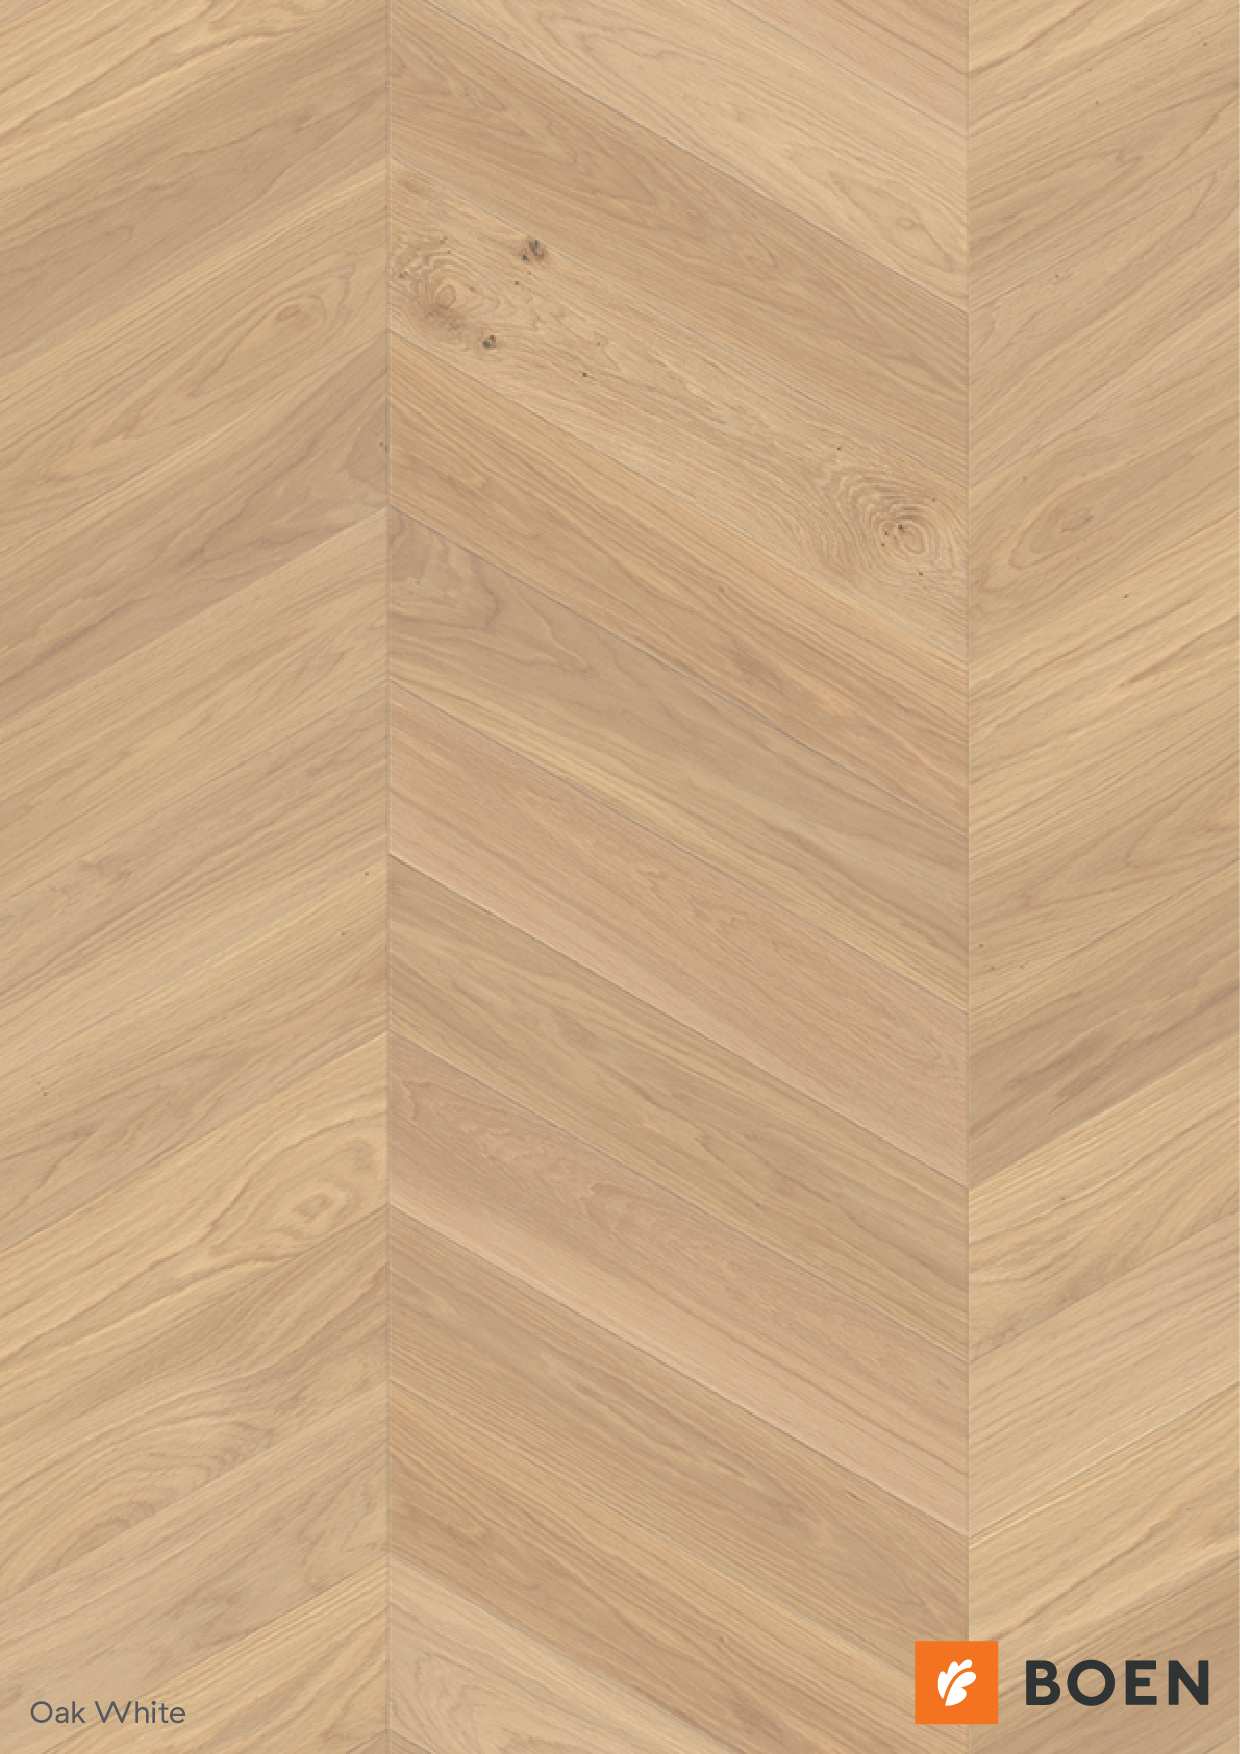 BOEN wood flooring oak chevron